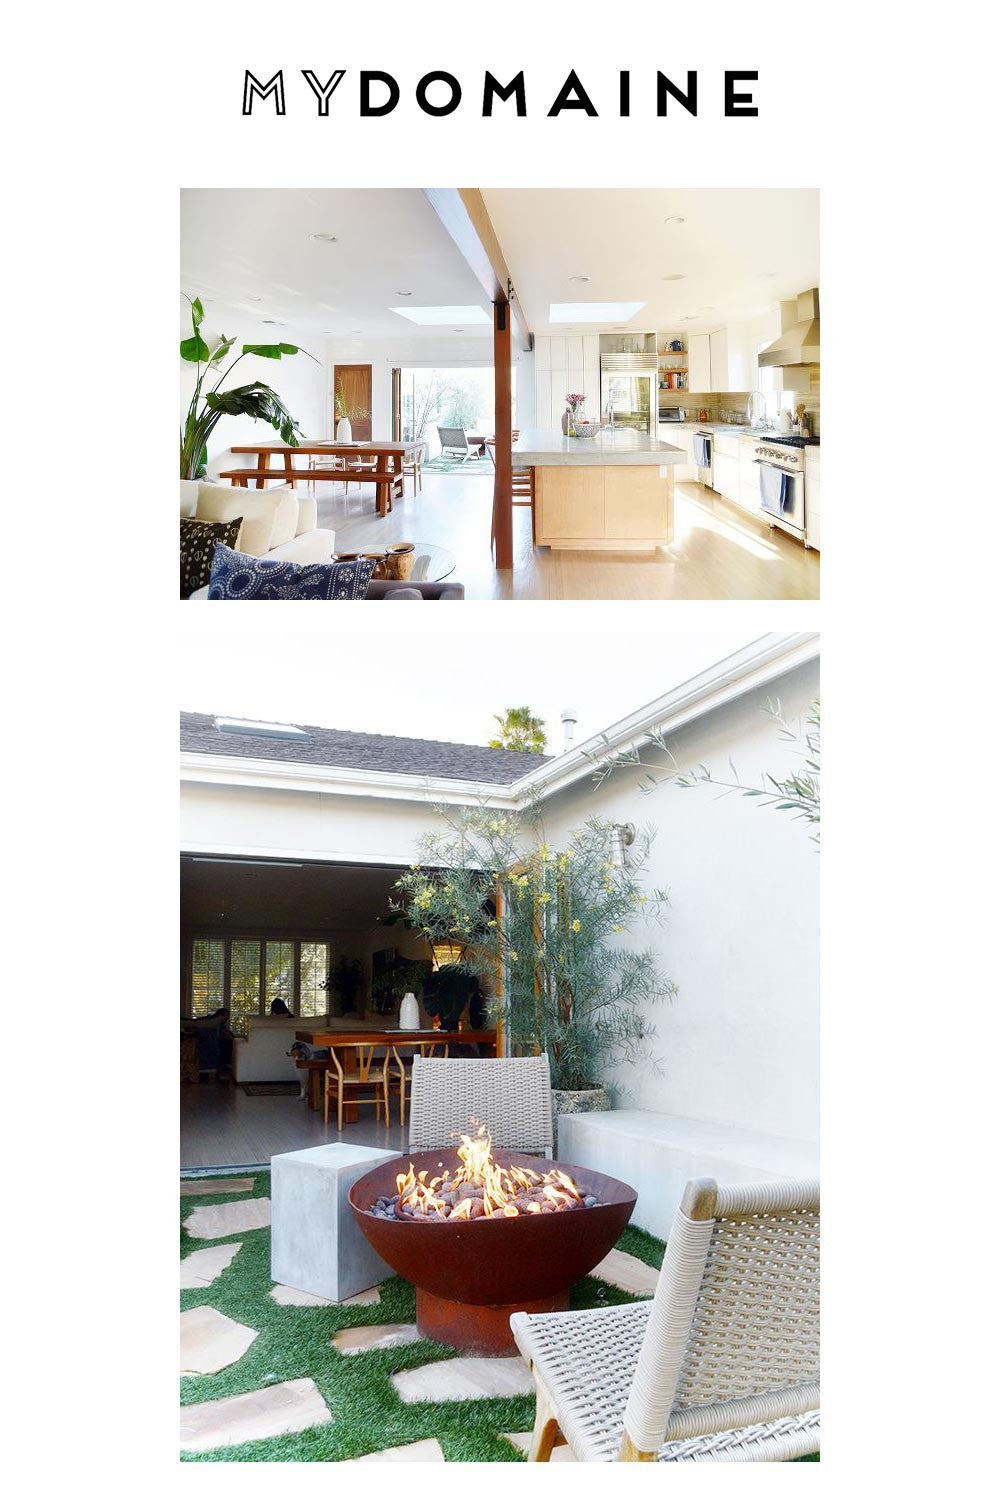 THE HOME OF MONROW'S CO-FOUNDER, MICHELLE WENKE, FEATURED ON MYDOMAINE